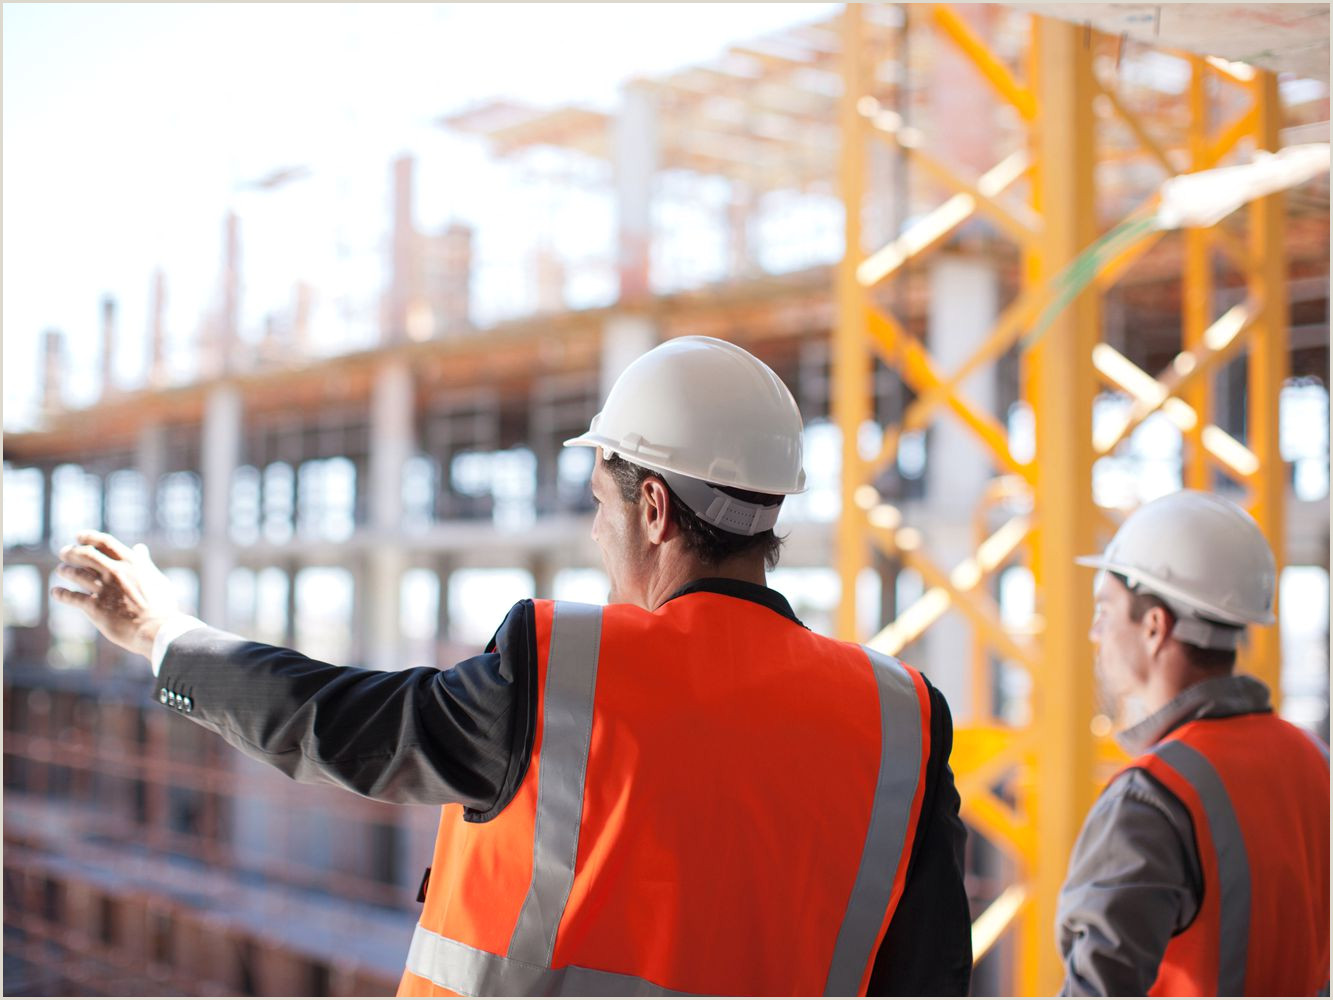 What It Takes to Be a Construction Safety ficer